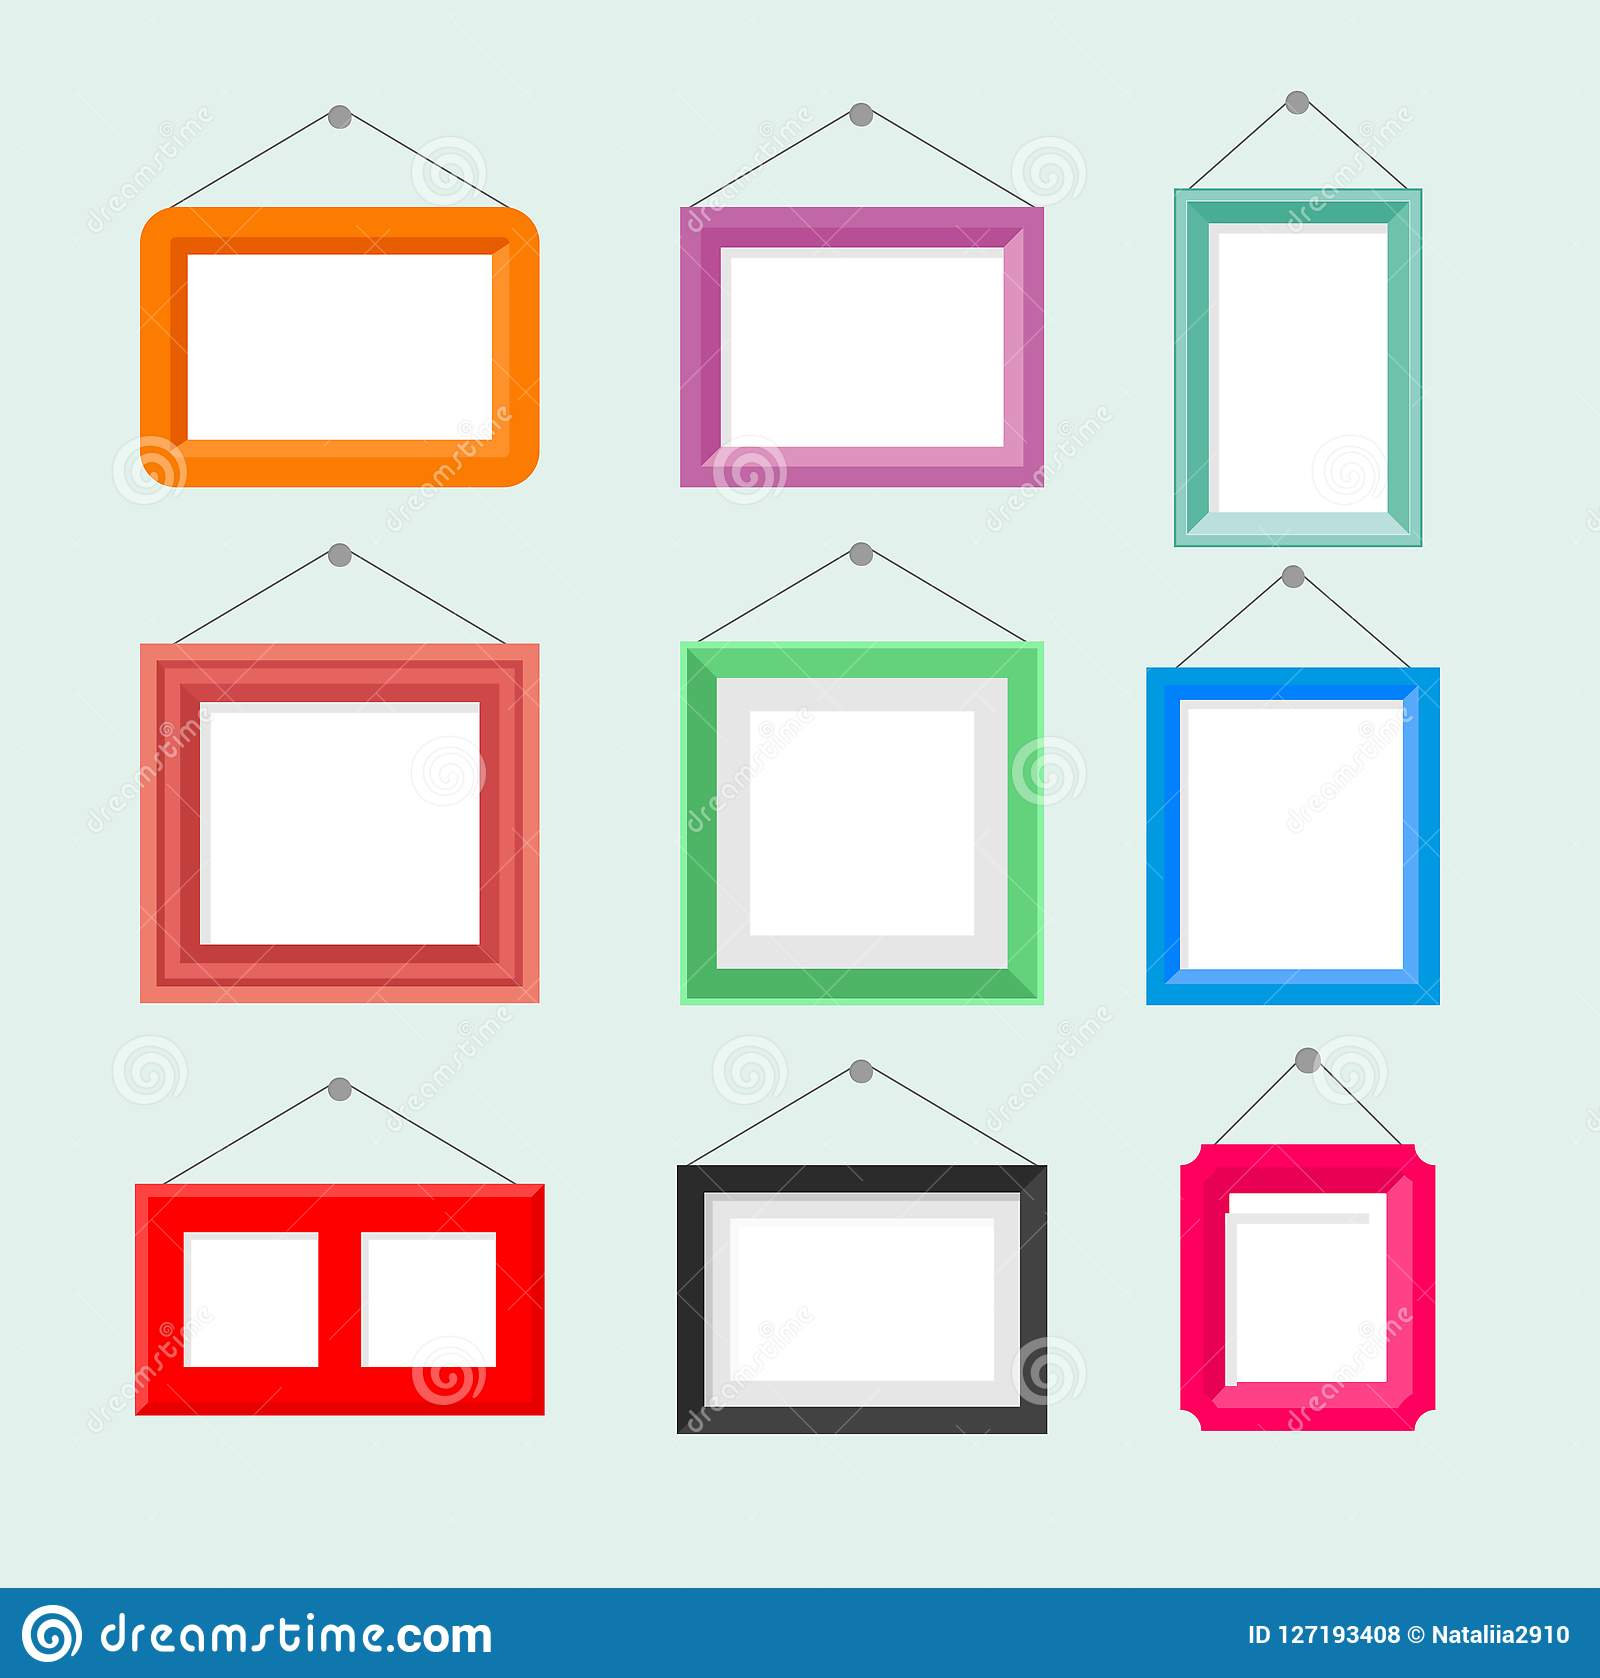 Vector illustration set of vintage photo picture frame. Painting drawing frame collection on blue background in cartoon